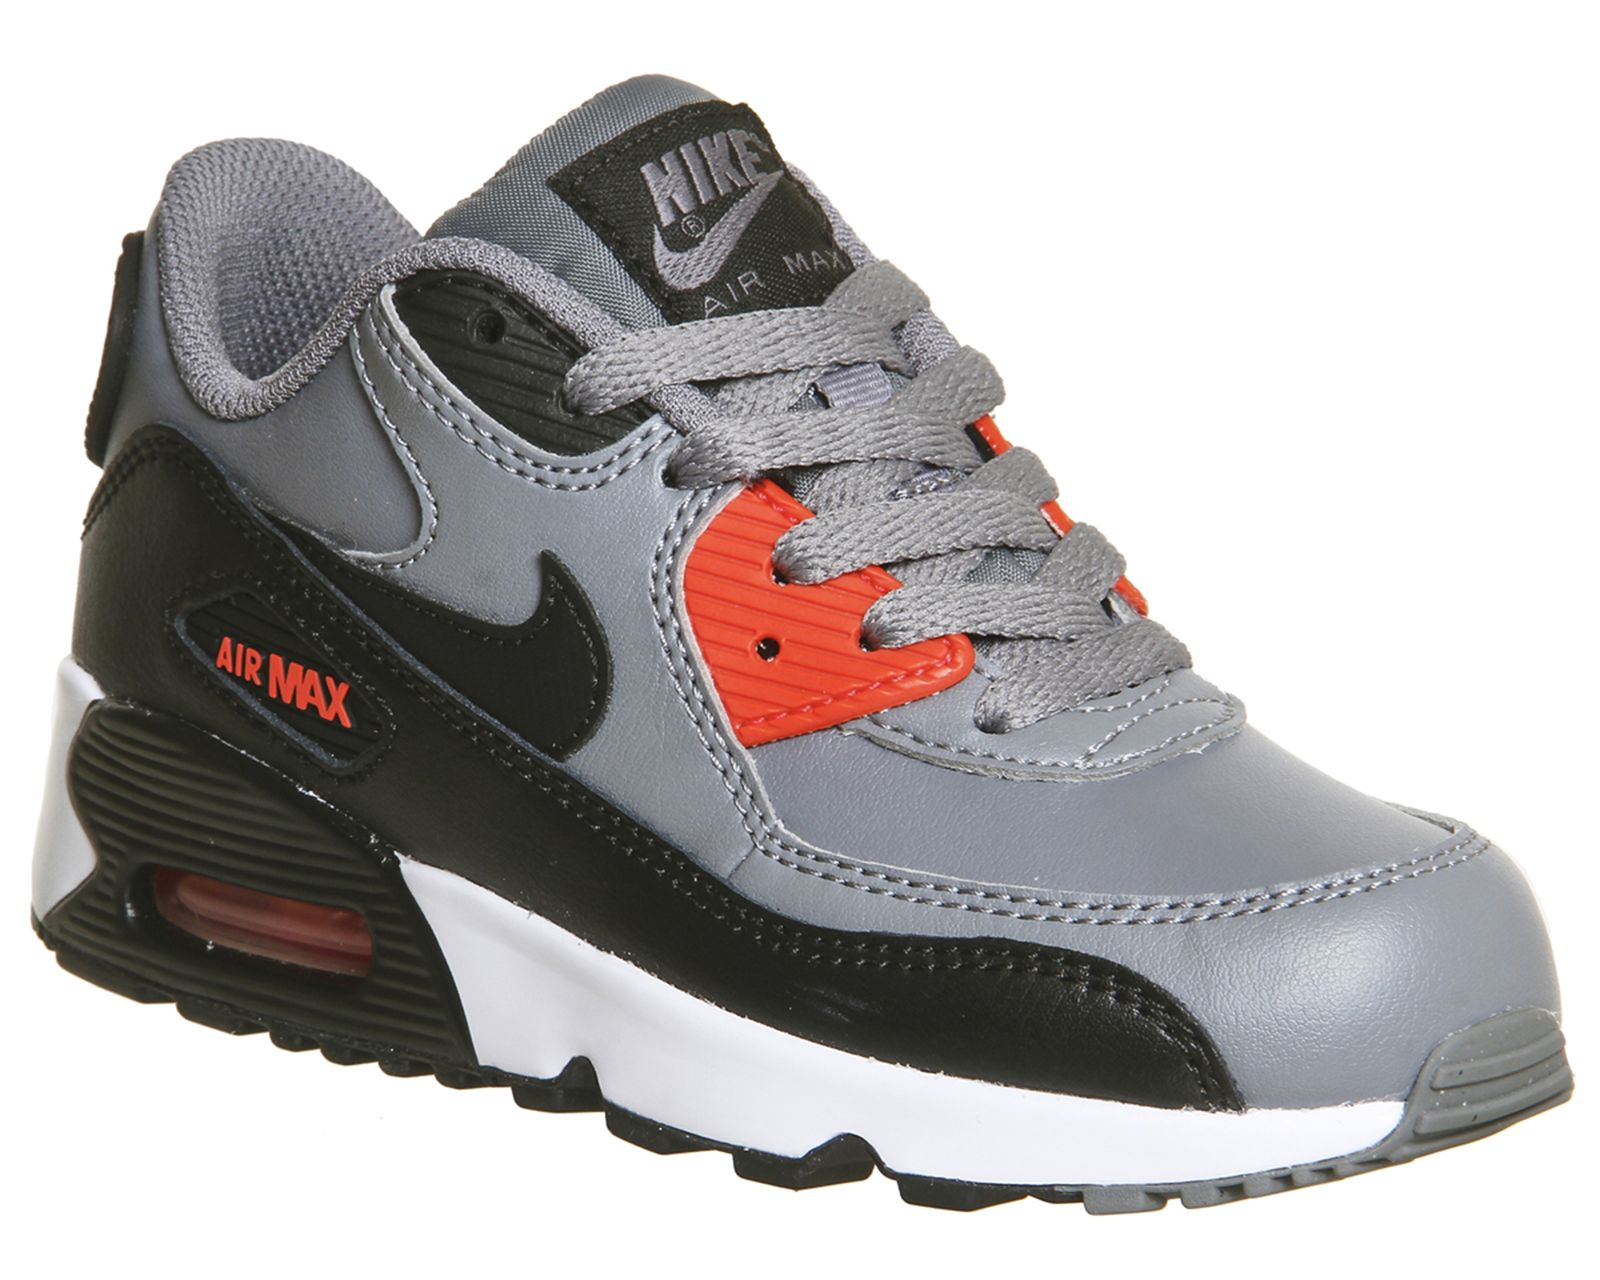 Nike Air Max 90 Ps Cool Grey Black Max Orange White - Unisex